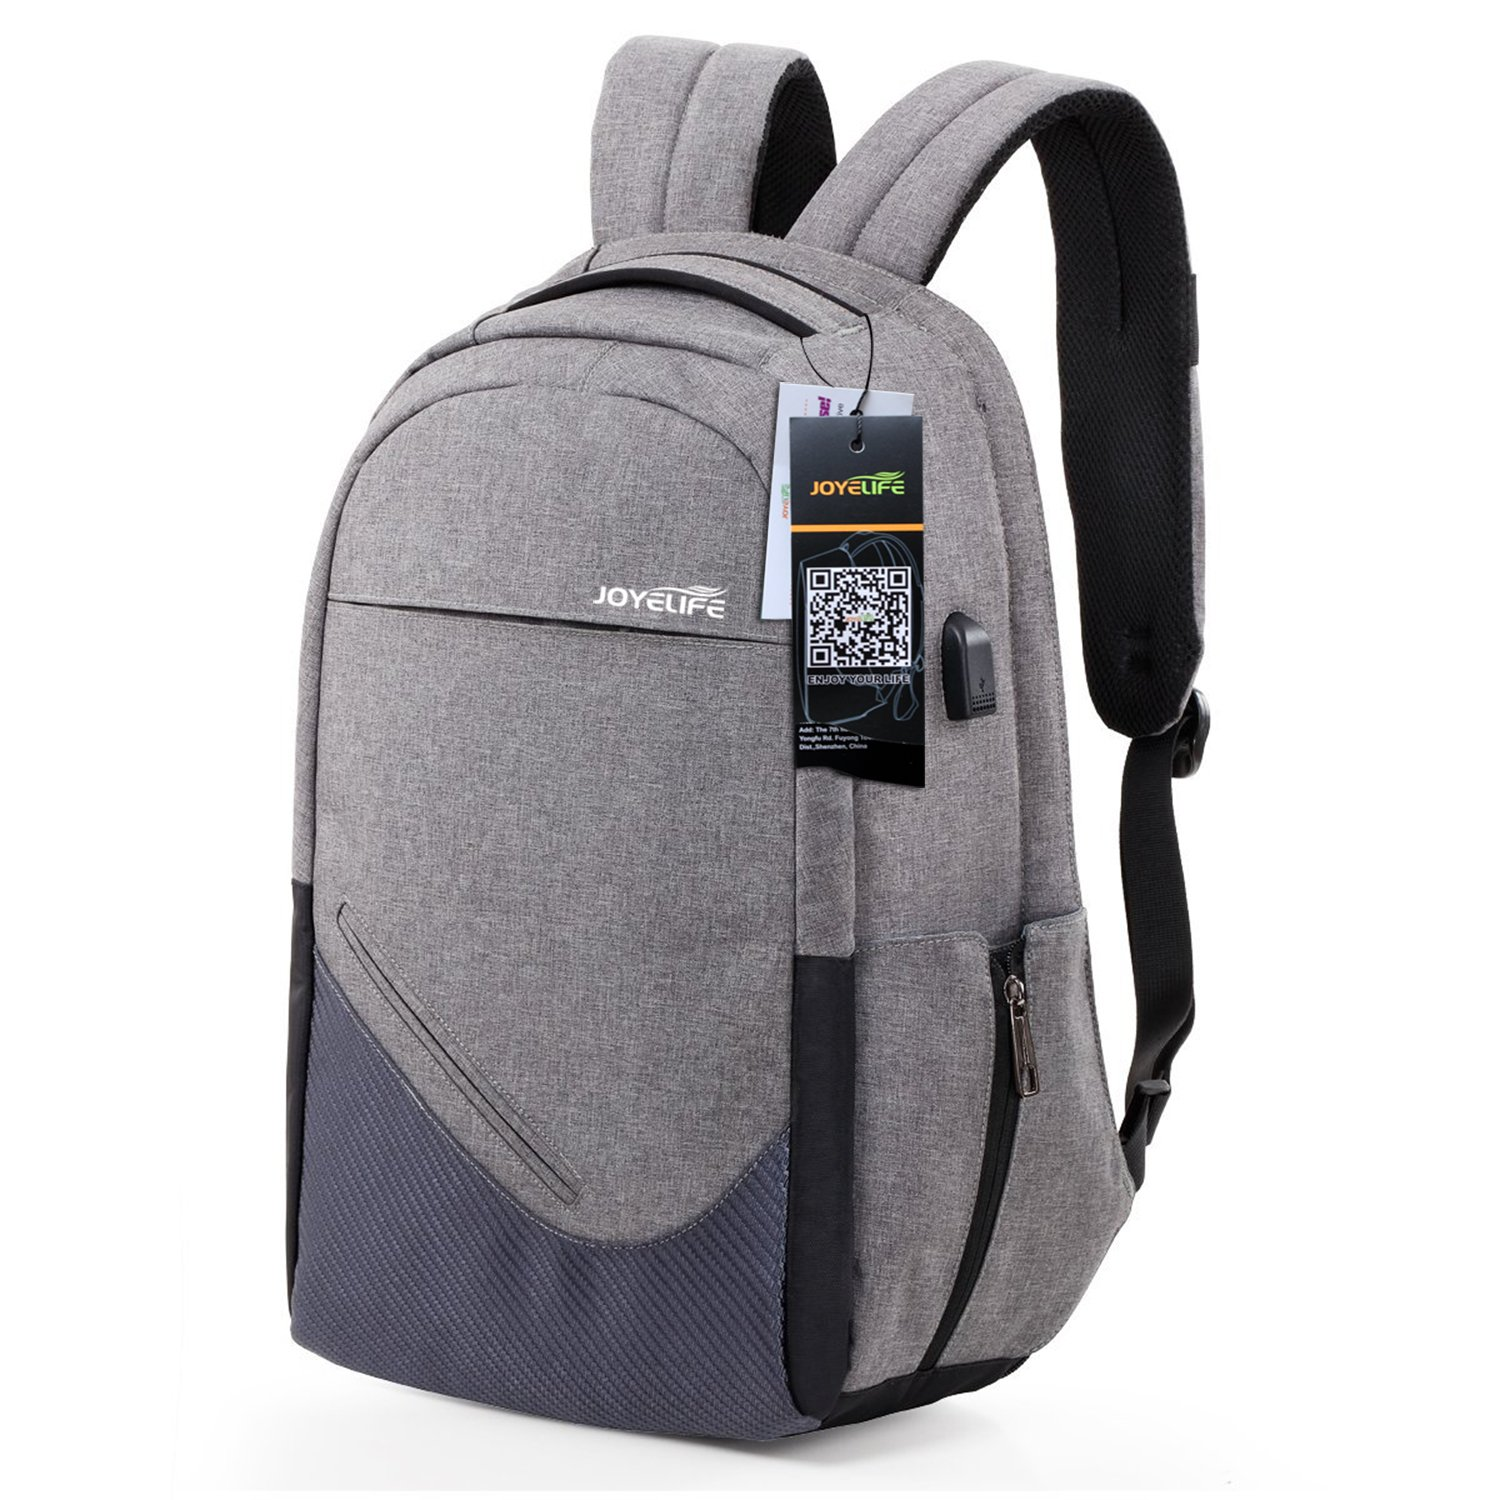 Amazon.com: Laptop Backpack for Men Women, JOYELIFE Anti Theft ...